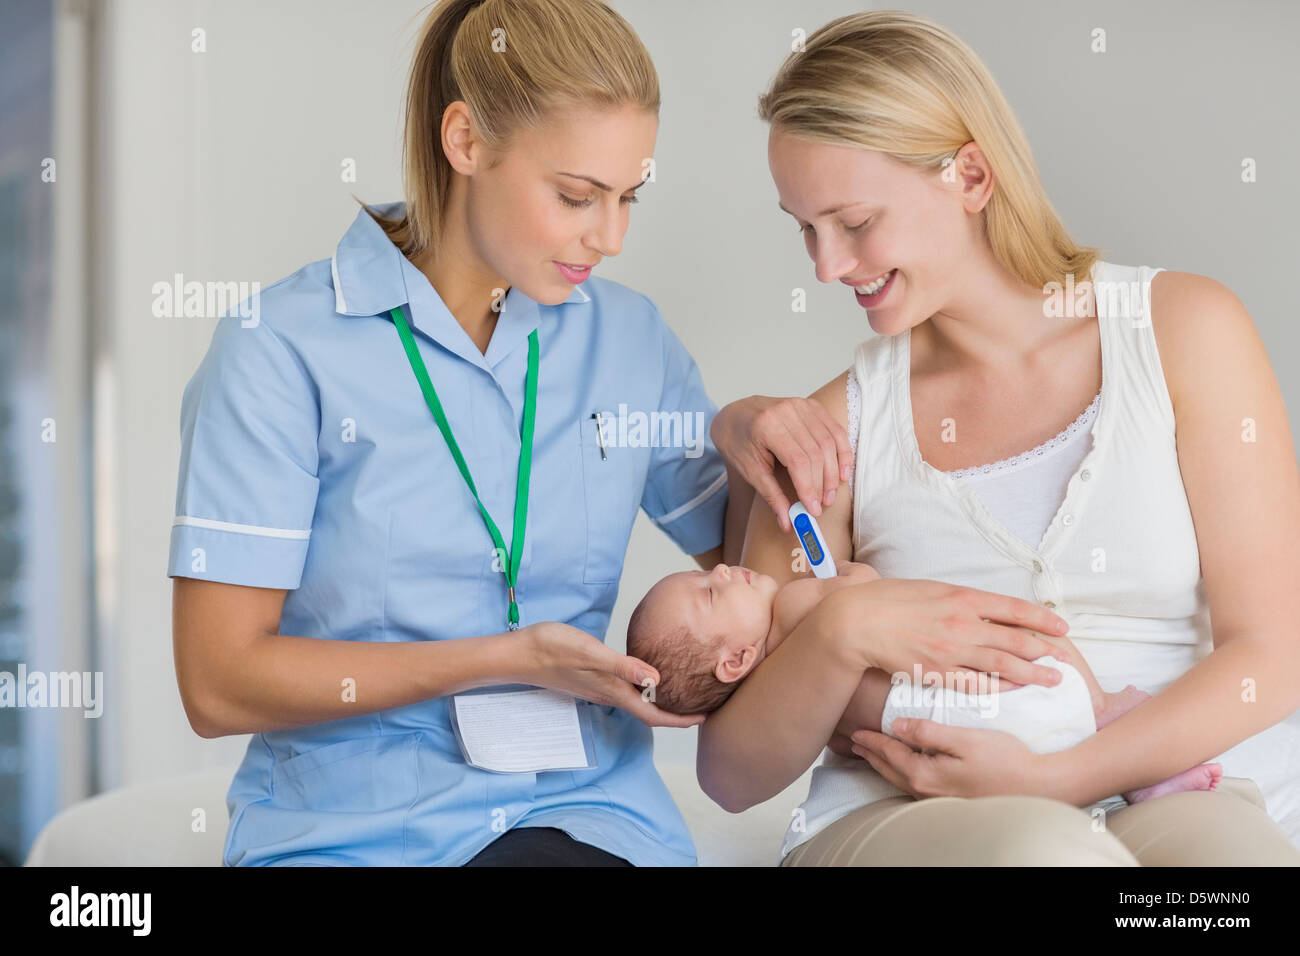 Mother and nurse taking newborn baby's temperature - Stock Image